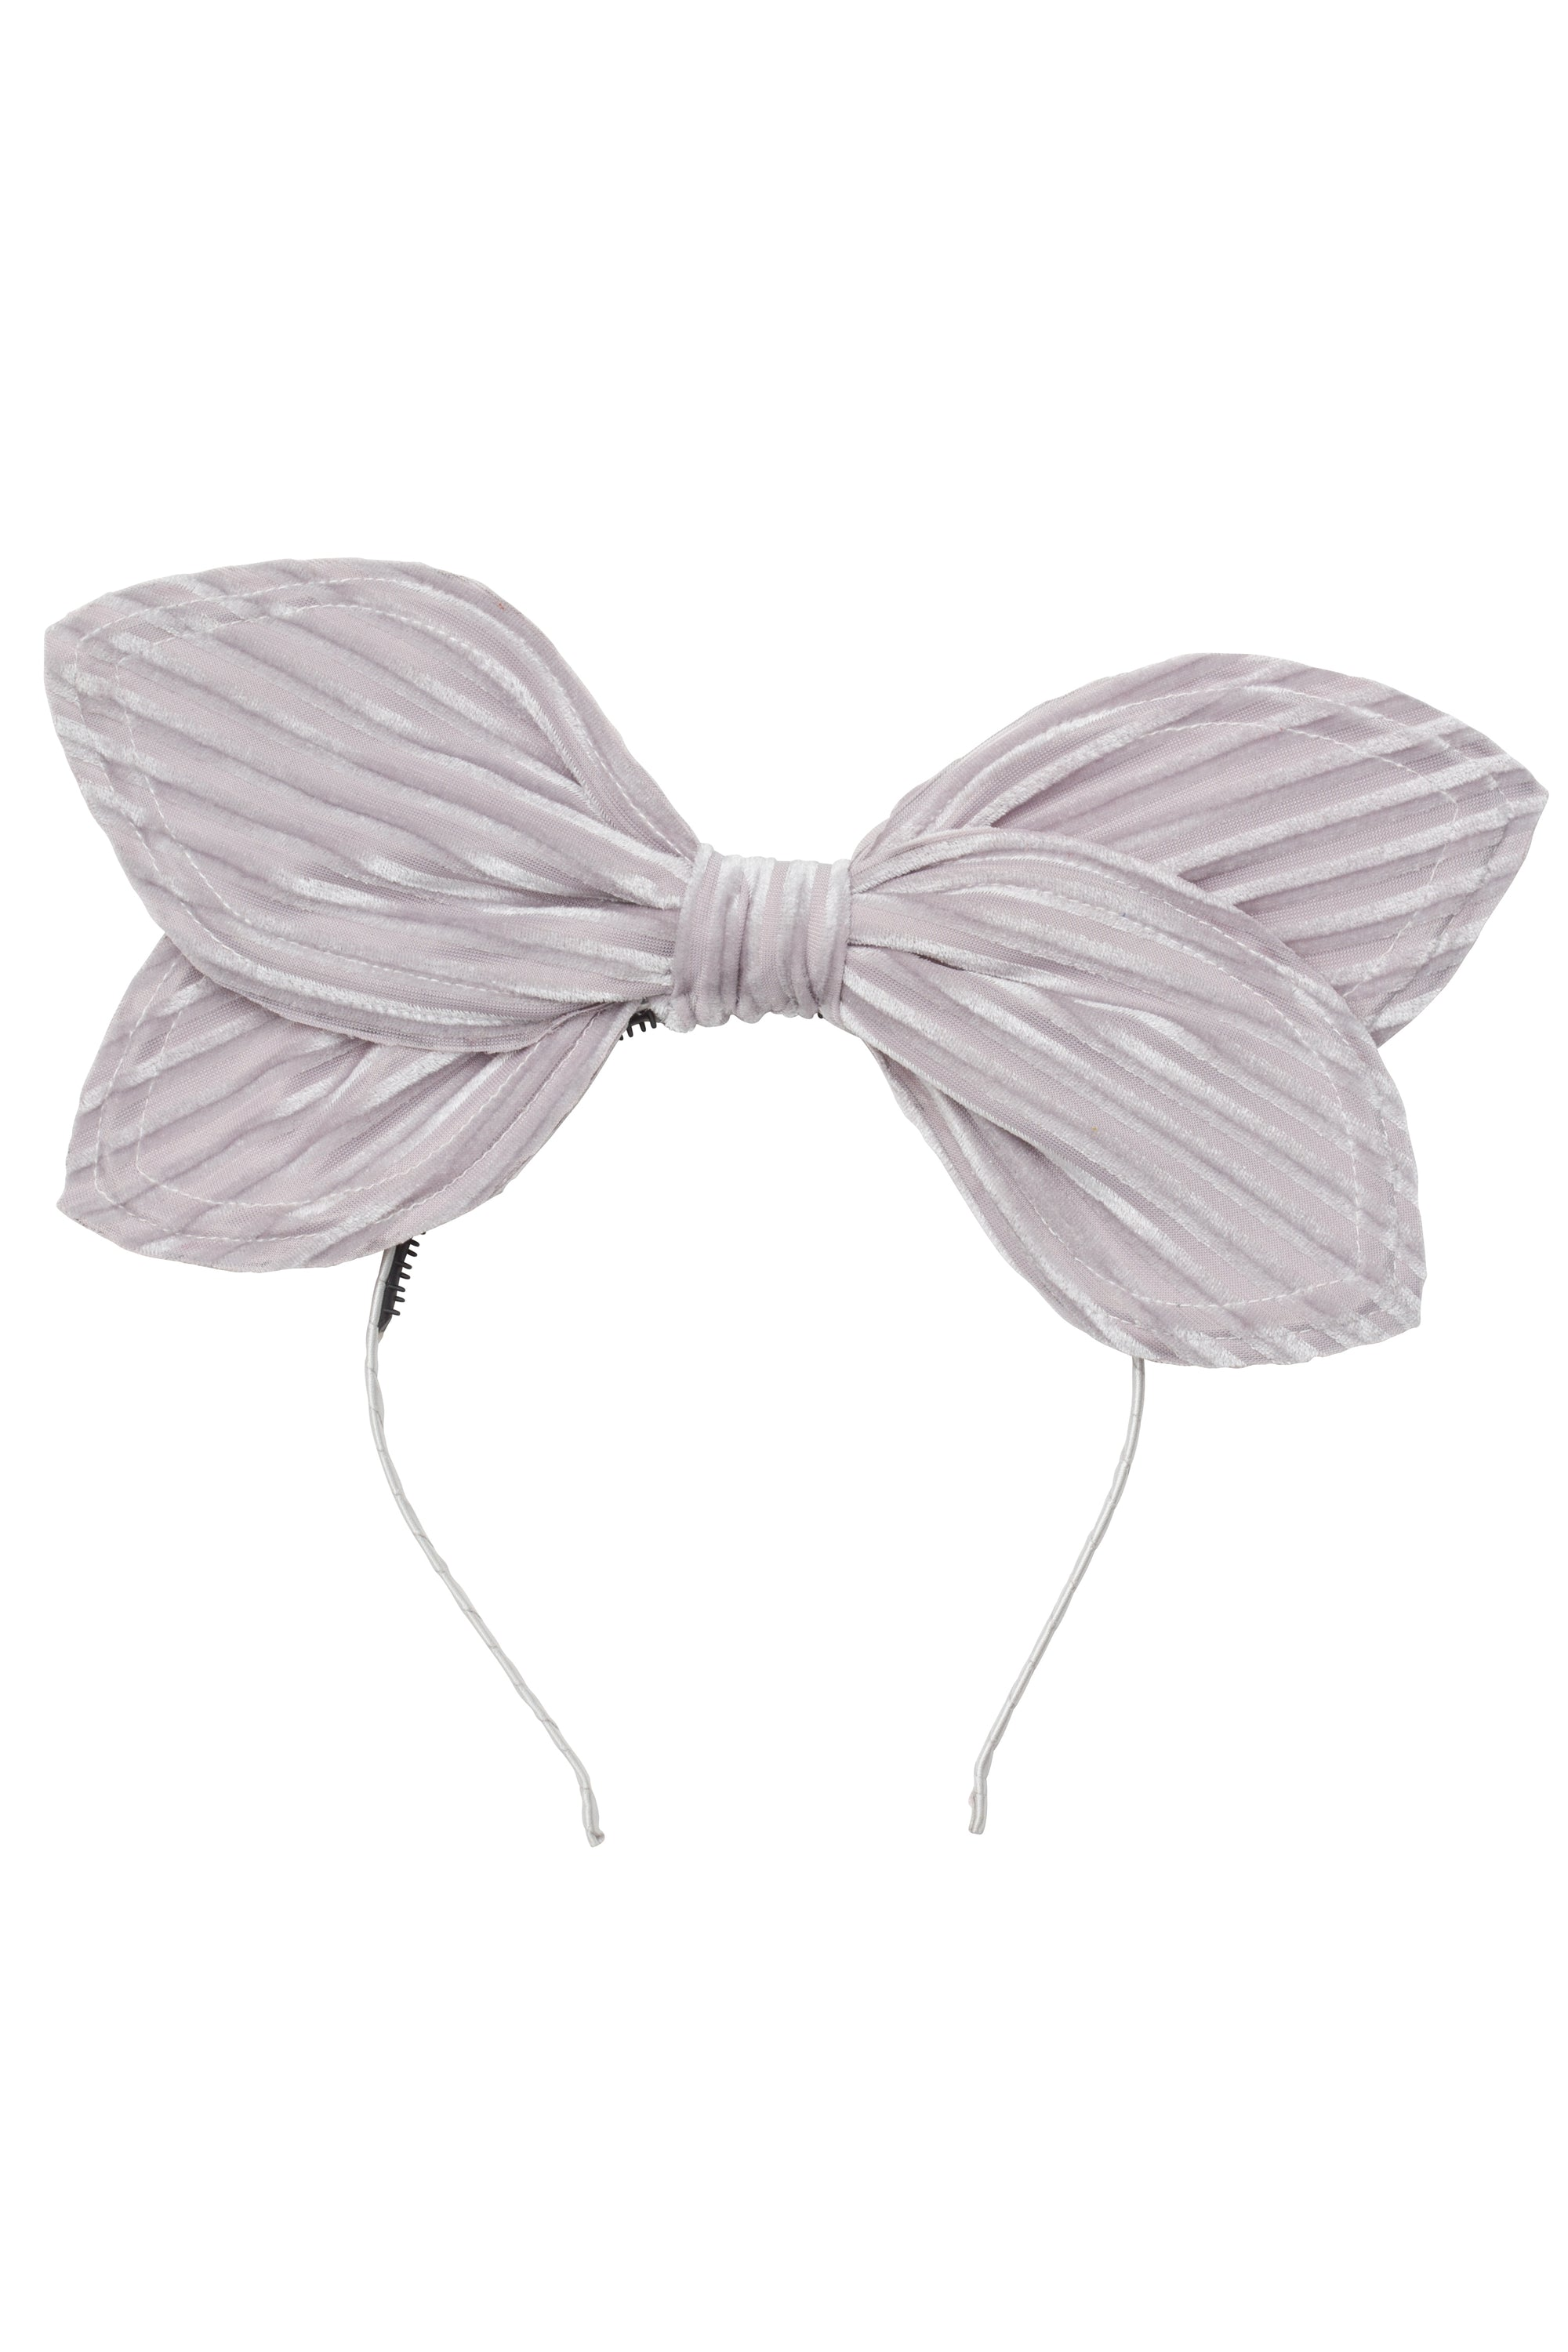 Growing Orchid Headband - Silver Velvet Stripe - PROJECT 6, modest fashion